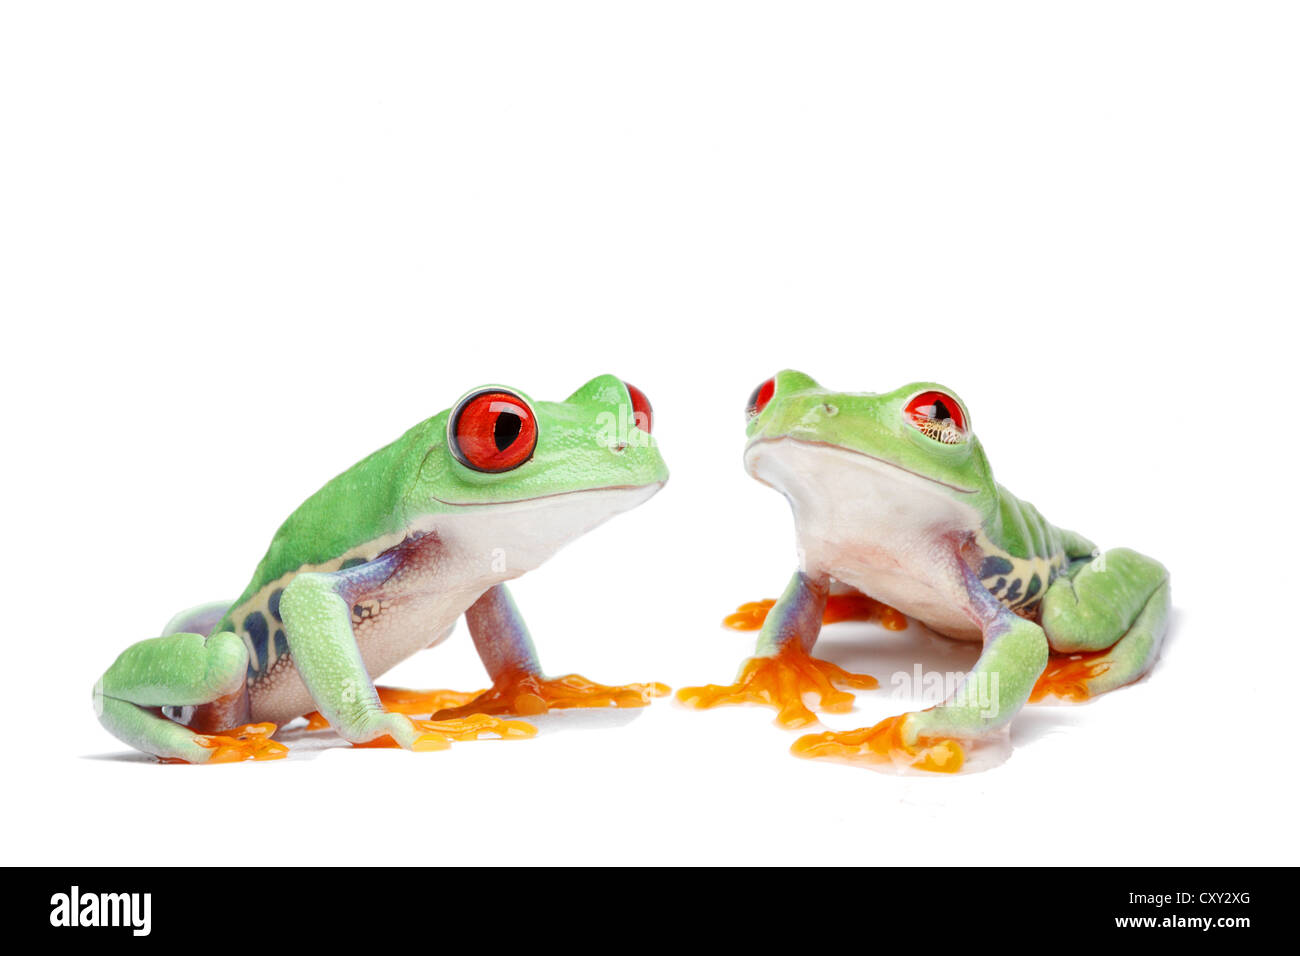 Two Red-eyed Tree Frogs (Agalychnis callidryas) Stock Photo